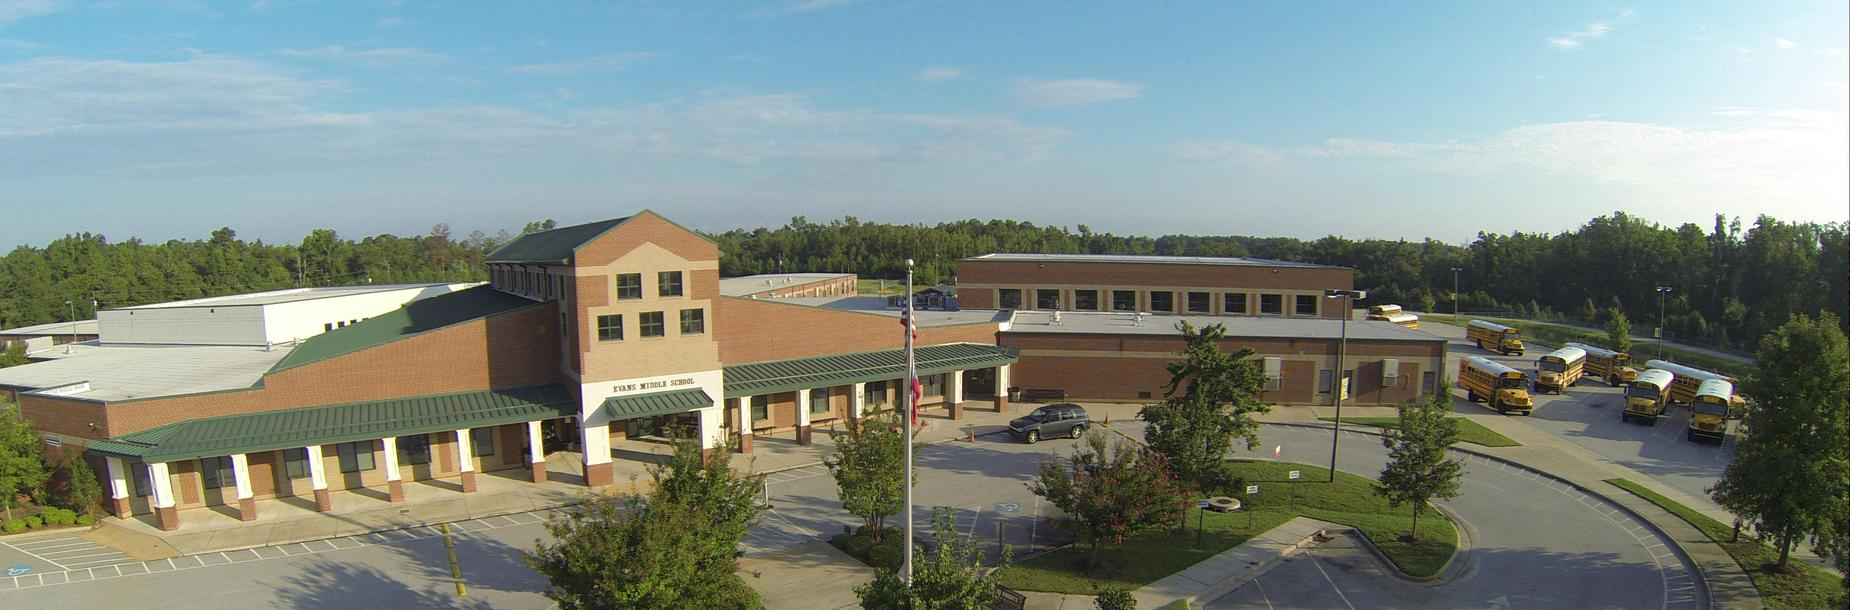 Evans Middle Aerial View